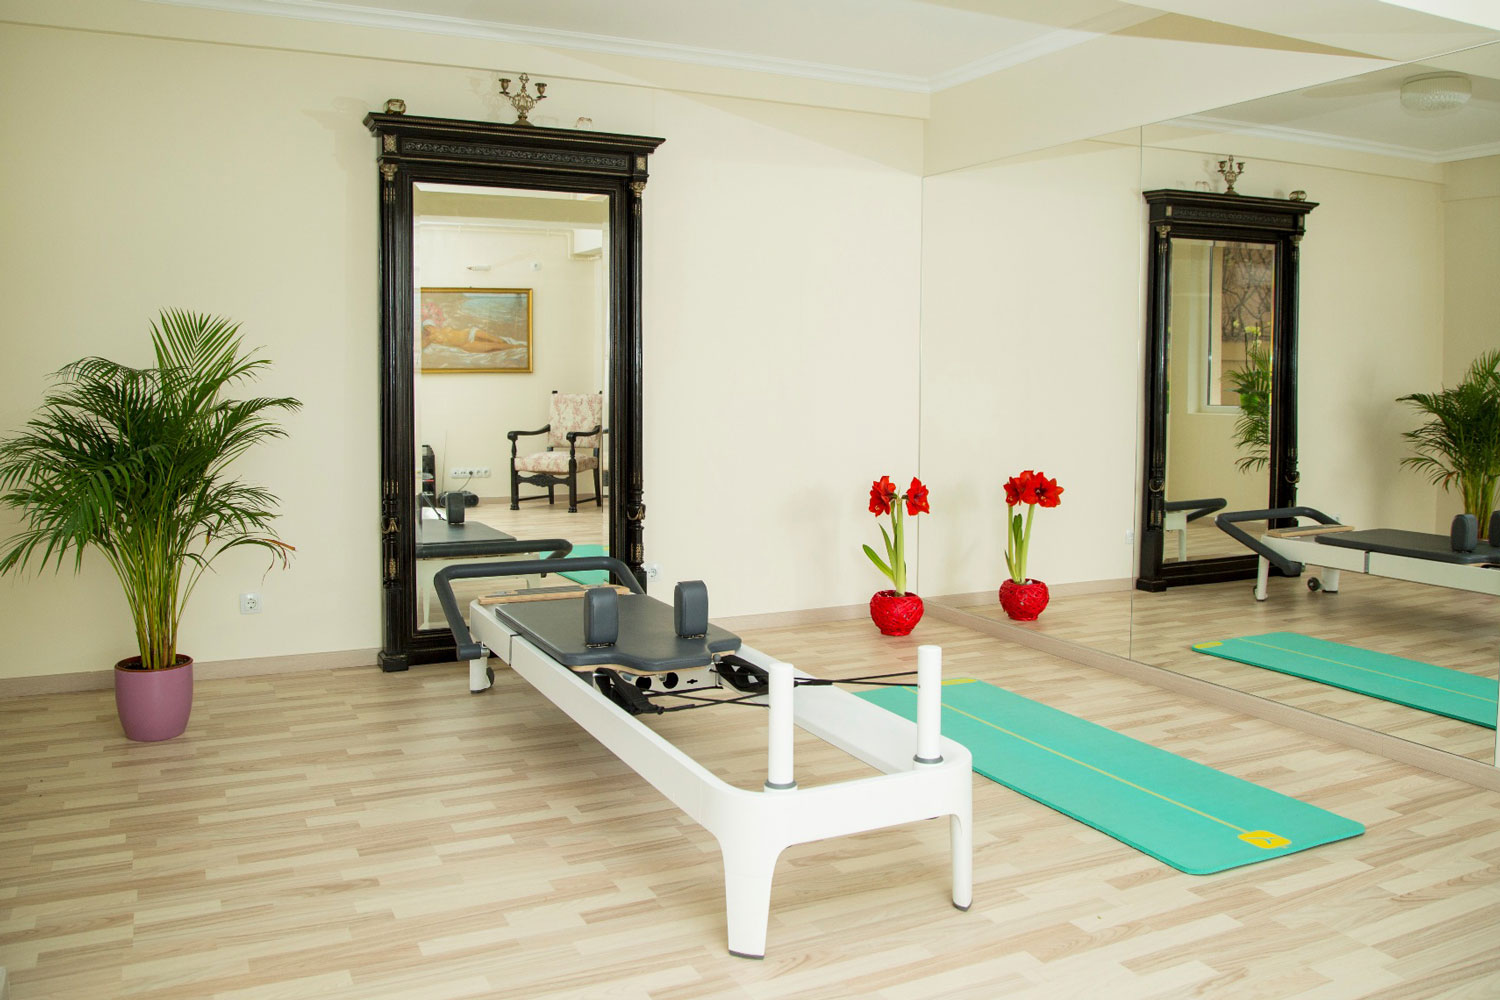 Rose Studio Pilates Reformer